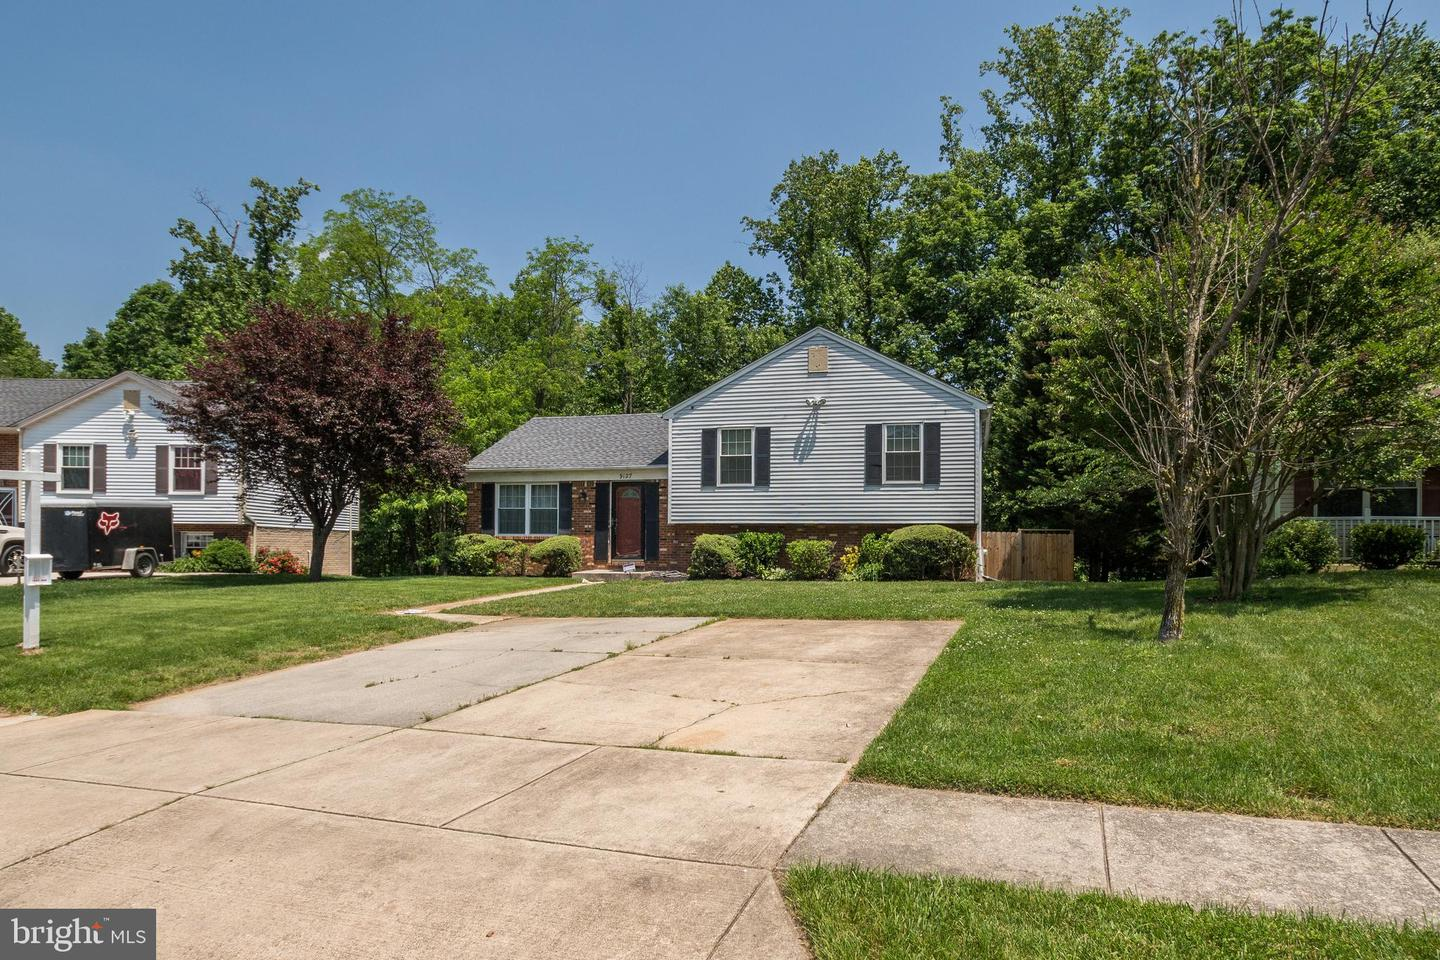 9127 MCHENRY LANE, LANHAM, Maryland